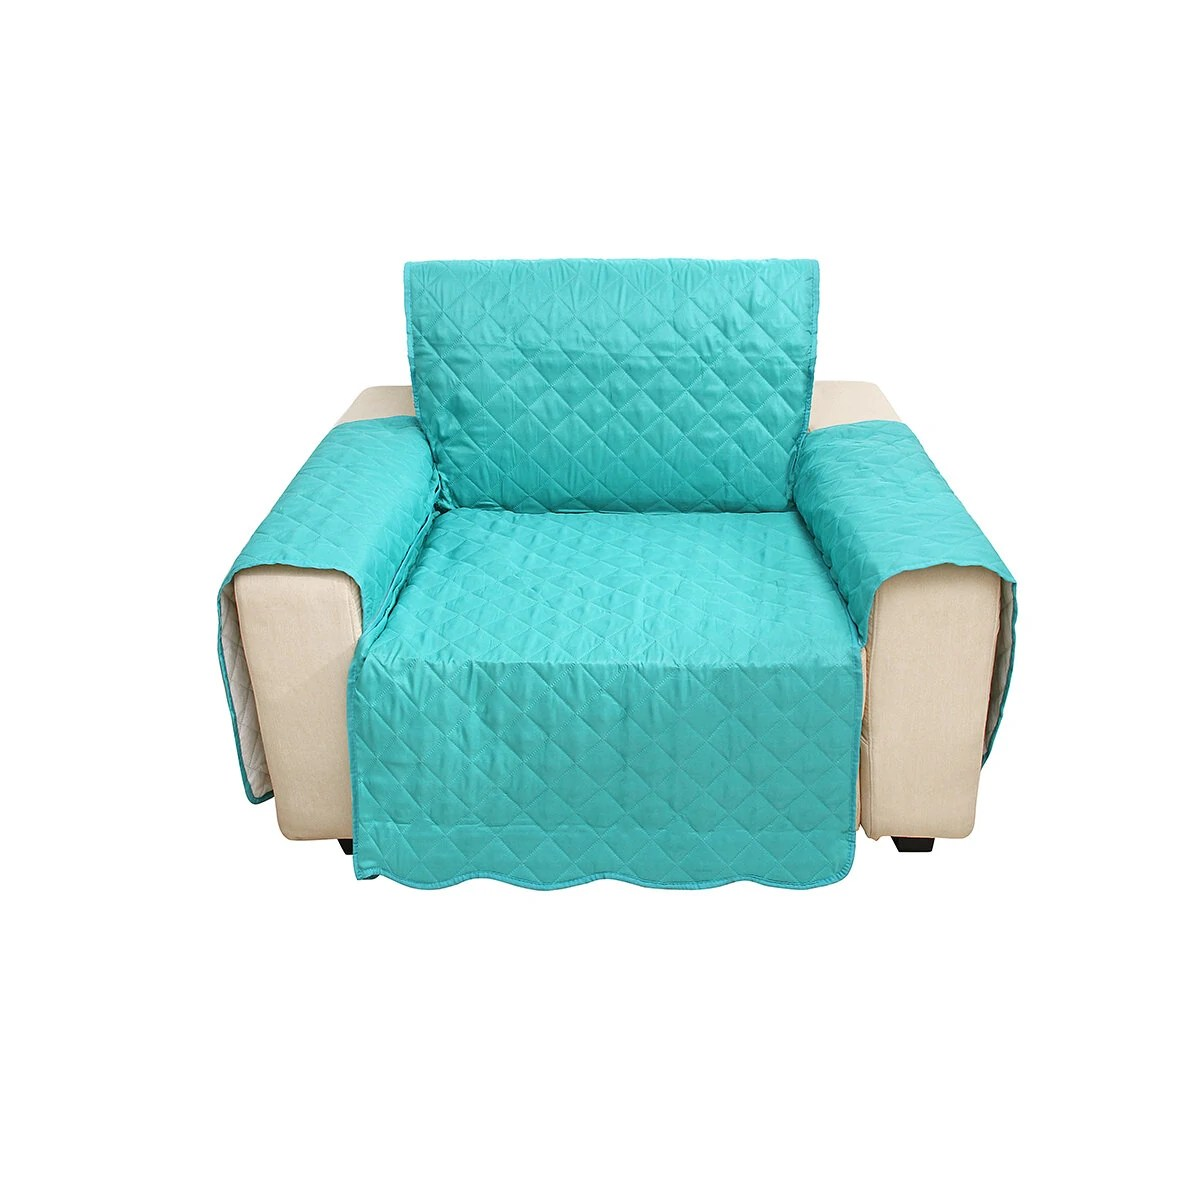 Single Seat Sofa Cover Living Room Home Decoration Polyester Fashion Dust Proof Chair Covers